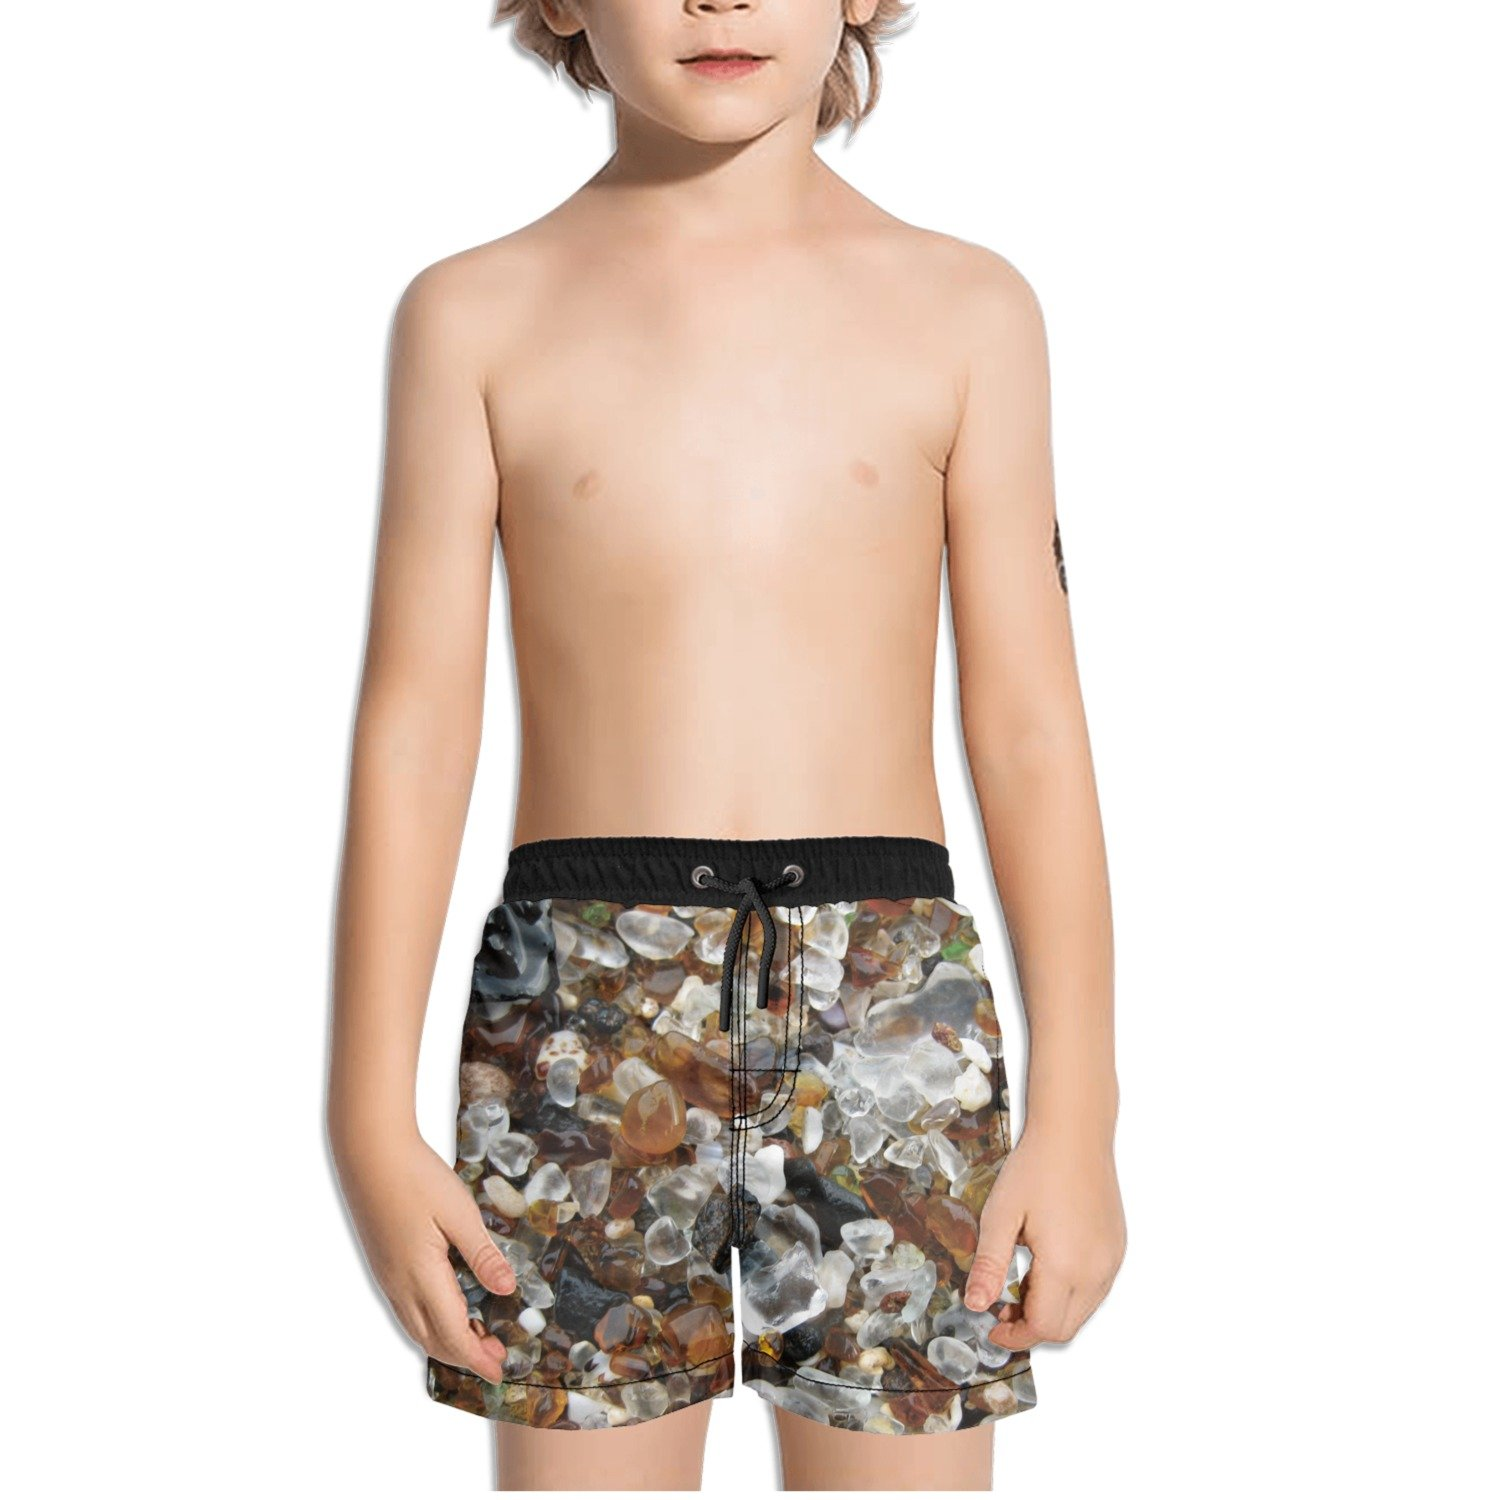 Ouxioaz Boys Swim Trunk Weathered Glass On Glass Beach Beach Board Shorts